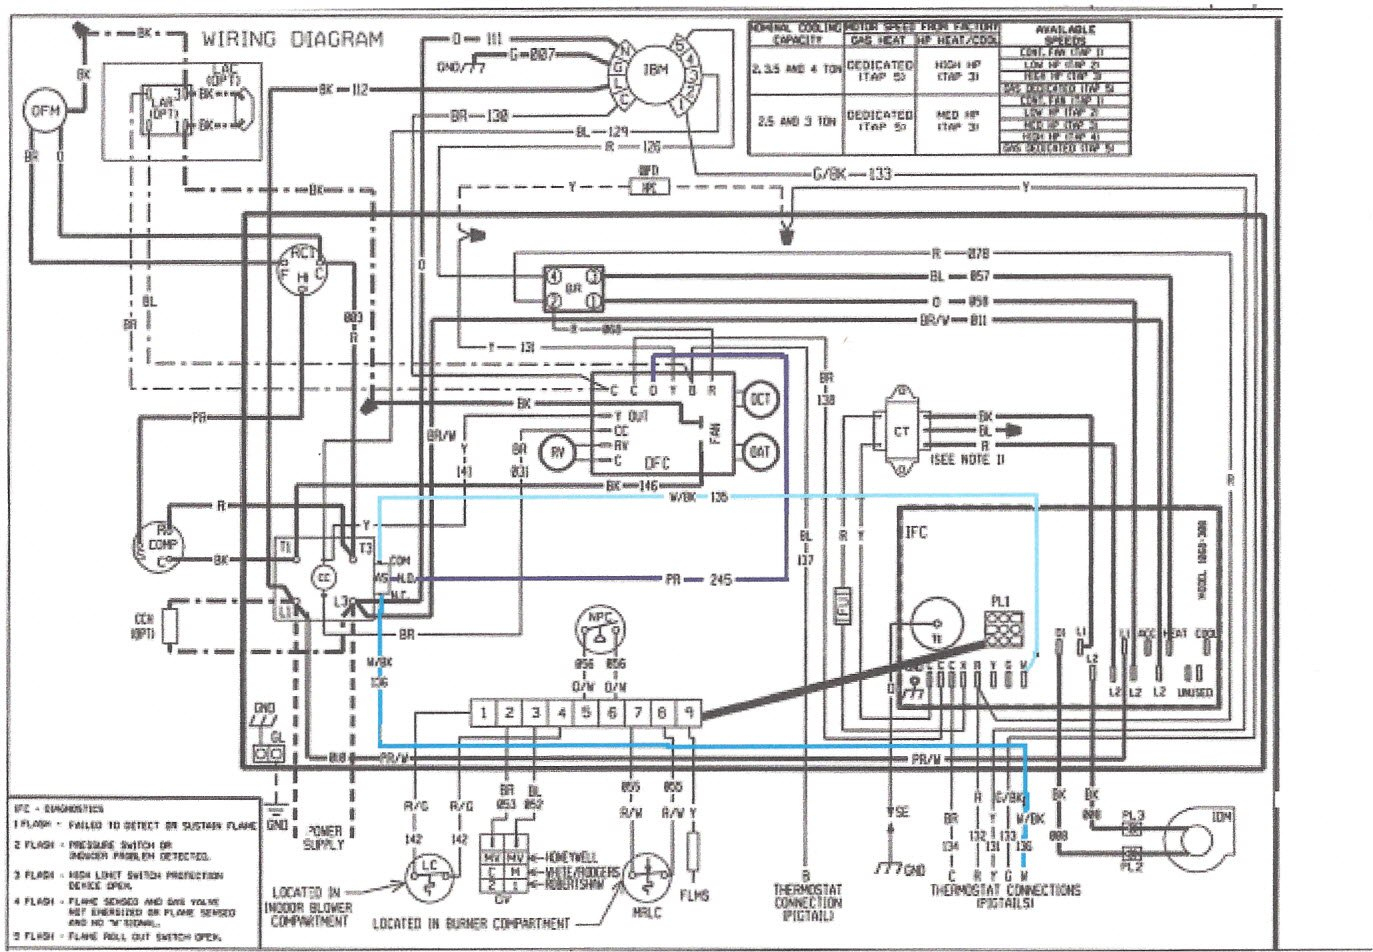 Weatherking Heat Pump Wiring Diagram For Nest 2